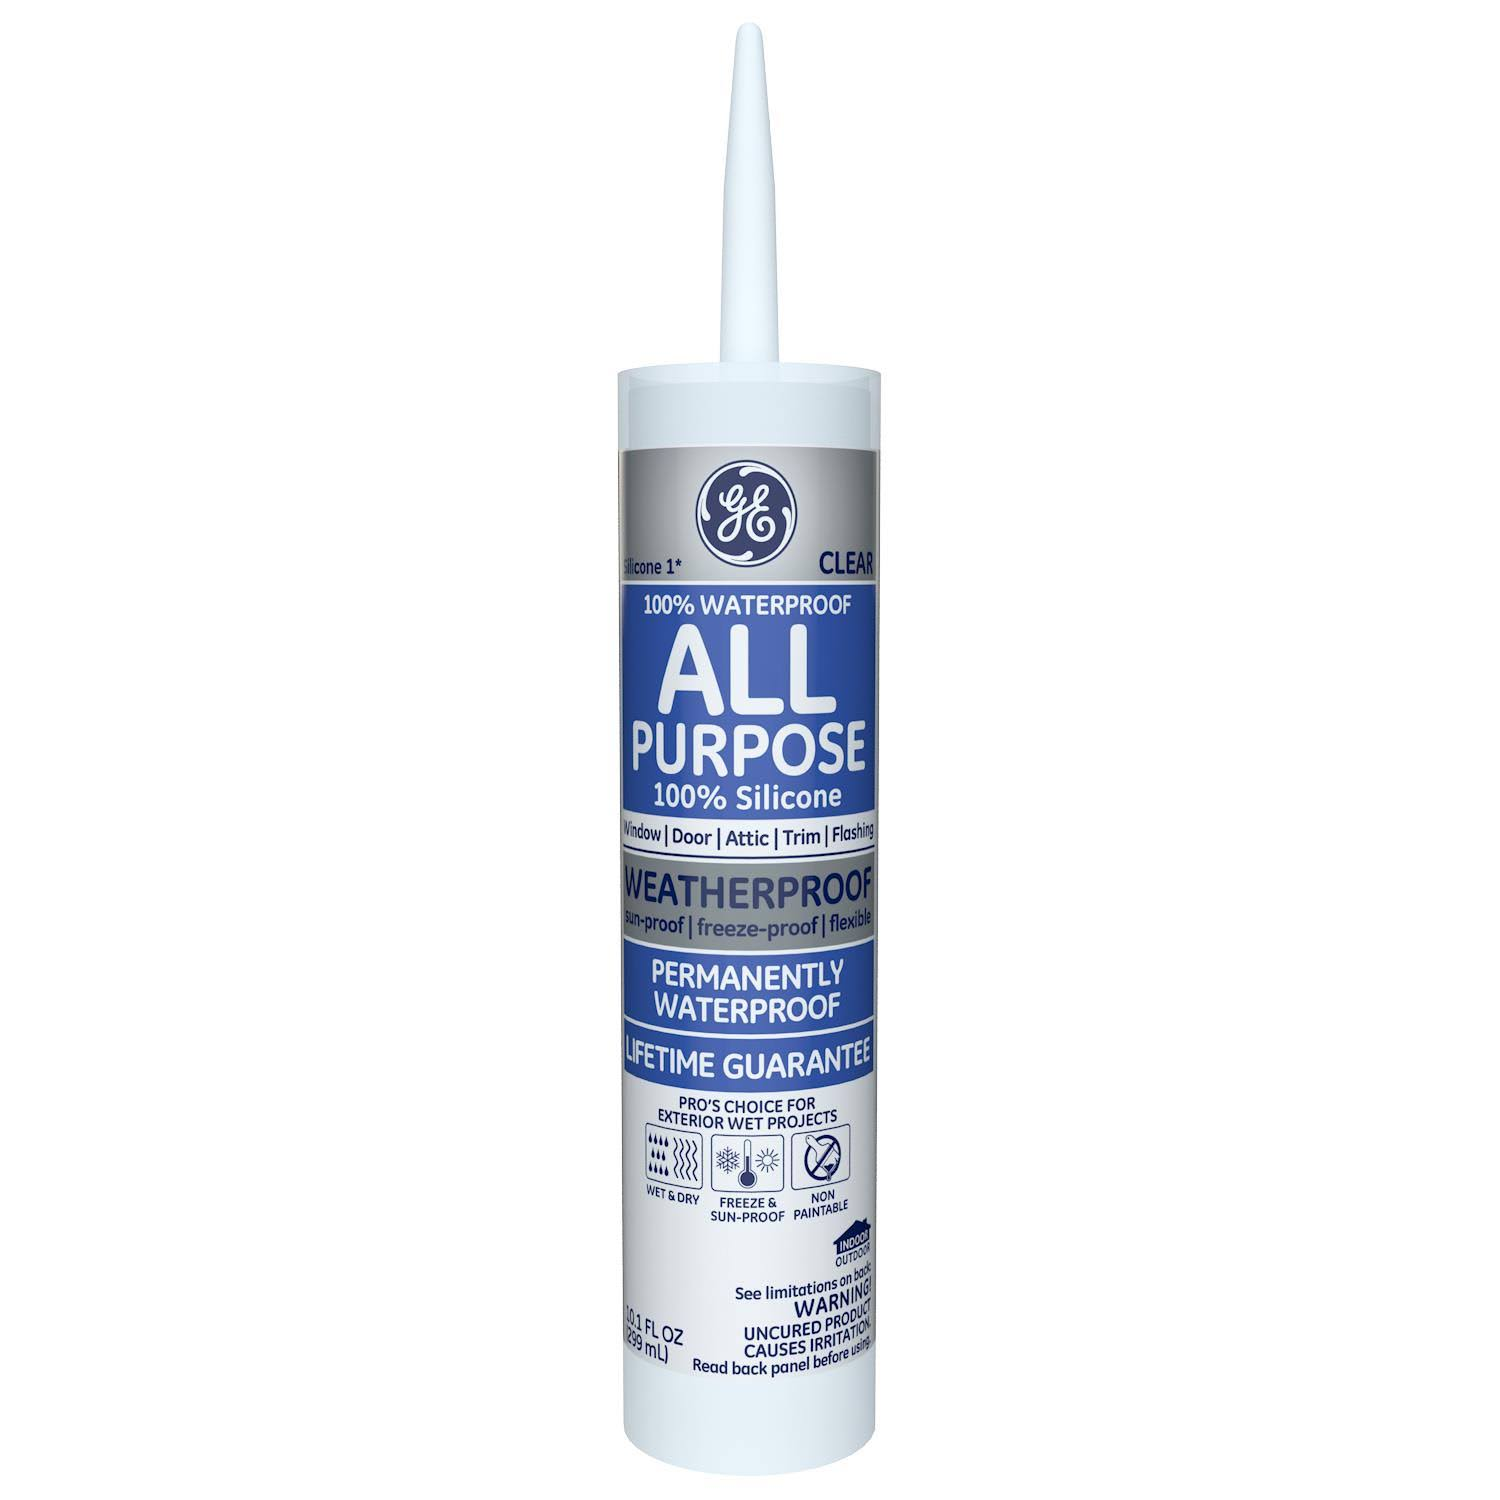 GE All Purpose Silicone Rubber Sealant - 10.1oz, Clear